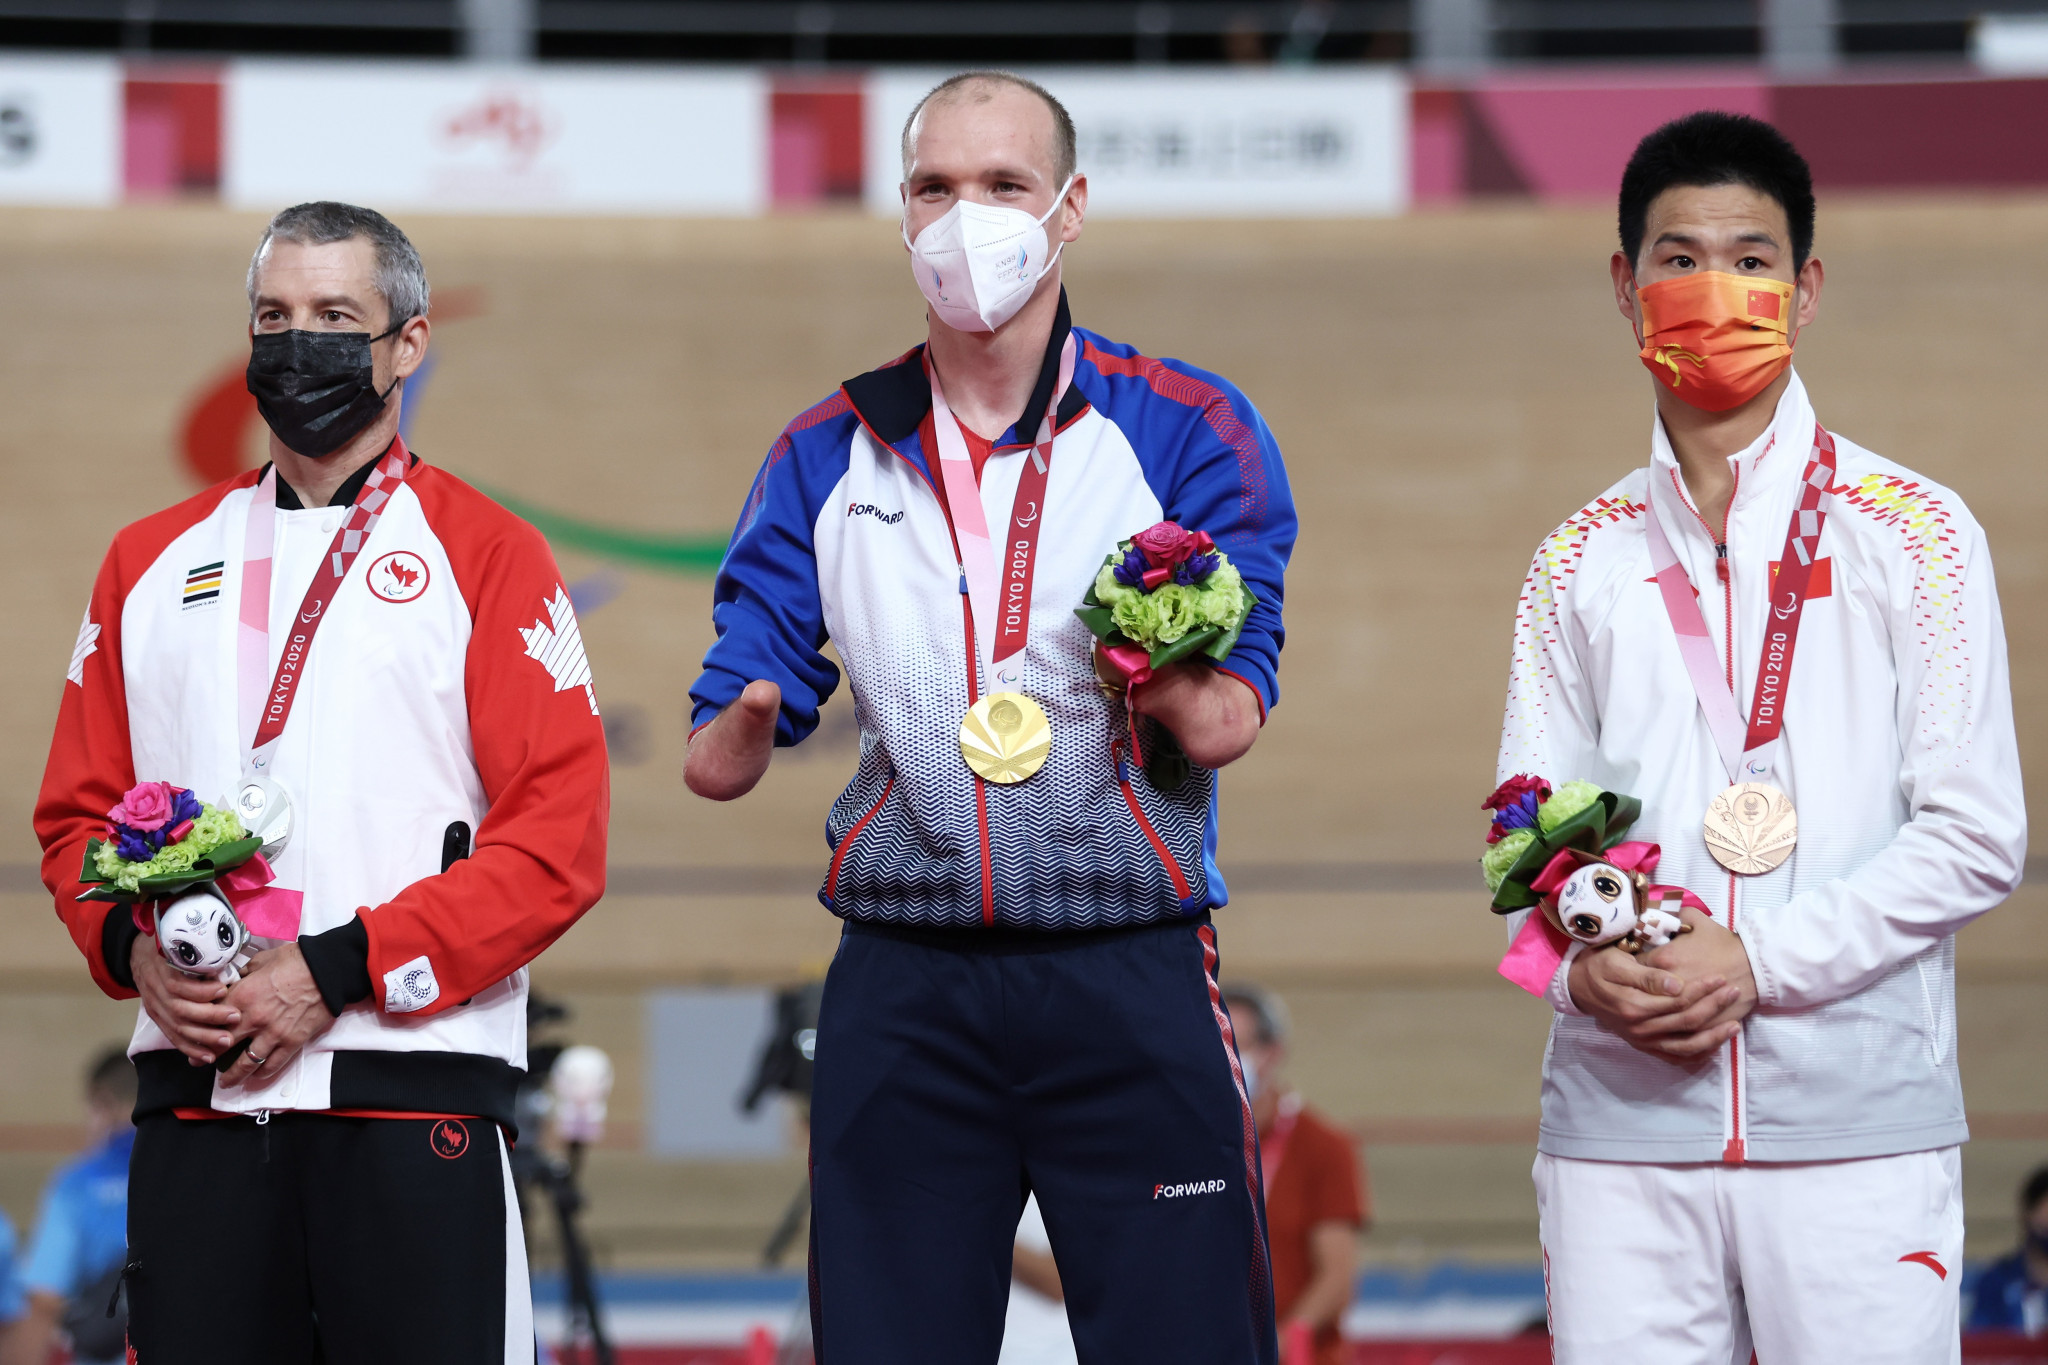 Tokyo 2020 apologises after using wrong anthem for RPC at Paralympics